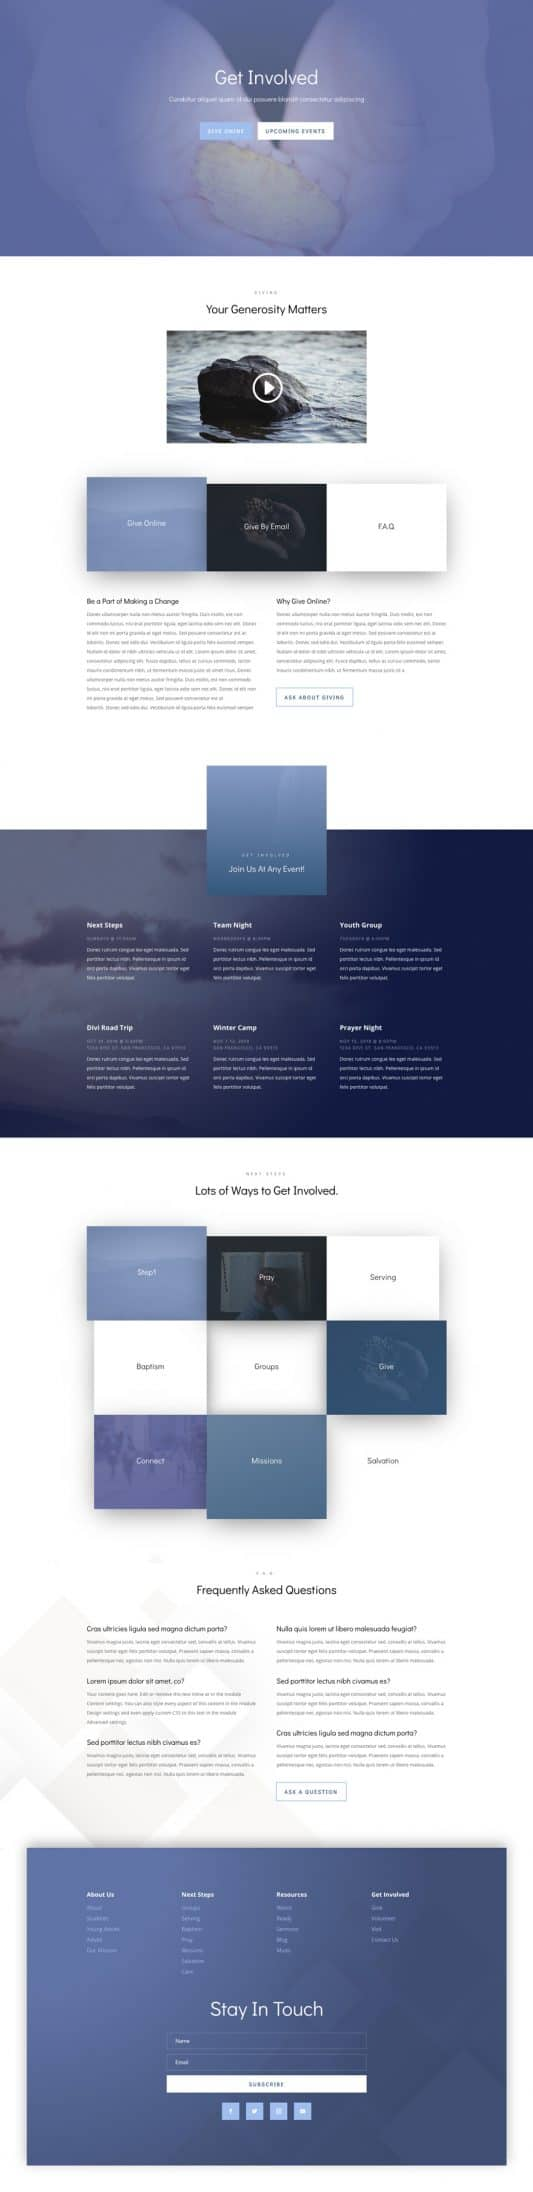 Church Web Design 2